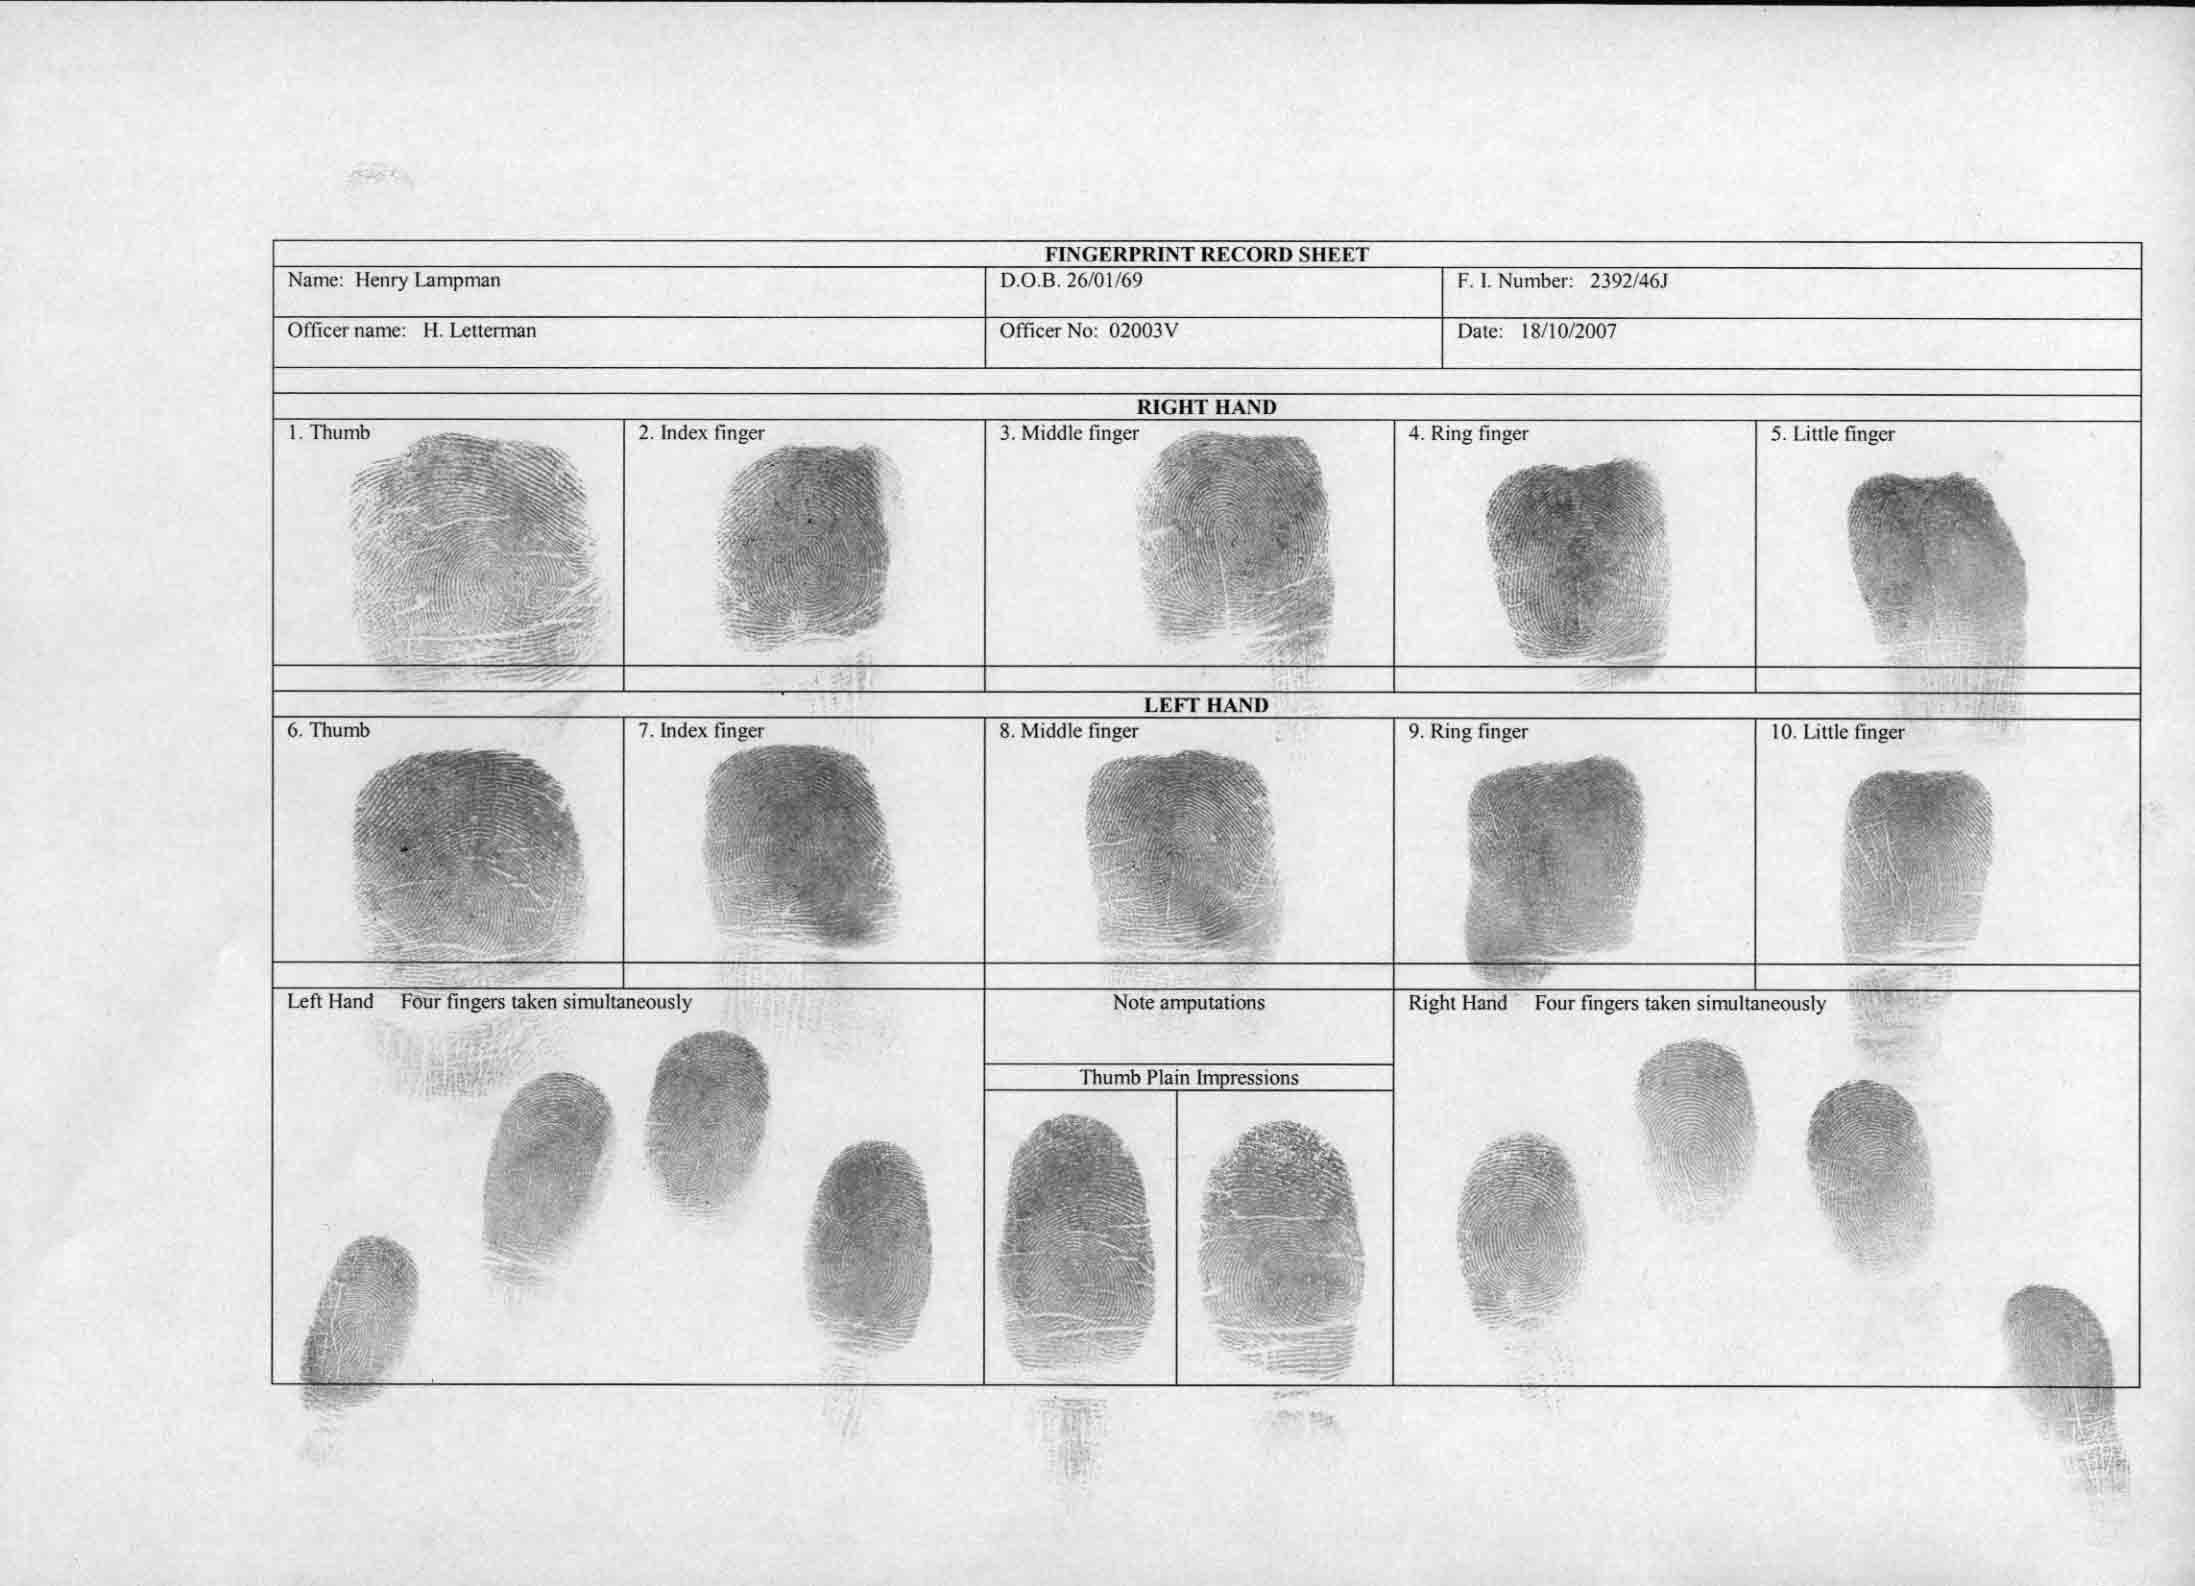 Suspects And Fingerprints